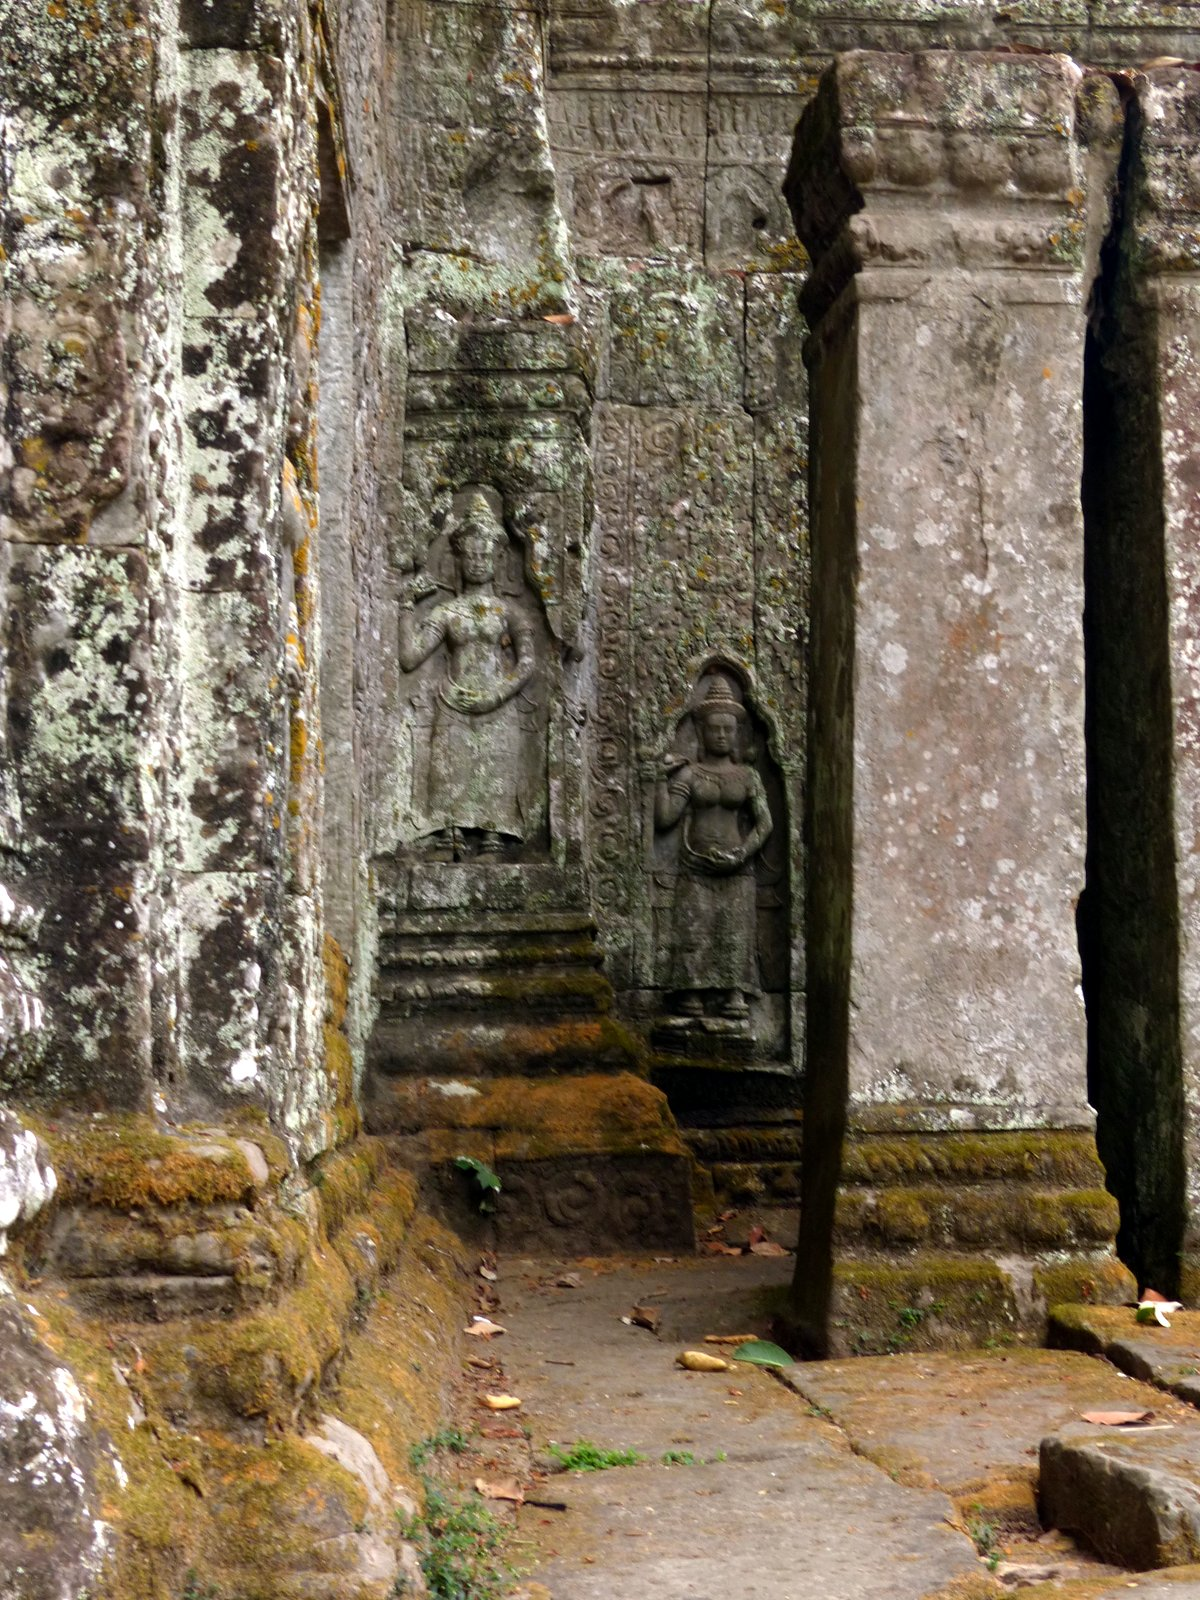 Some of the devara carvings that have survived for centuries.